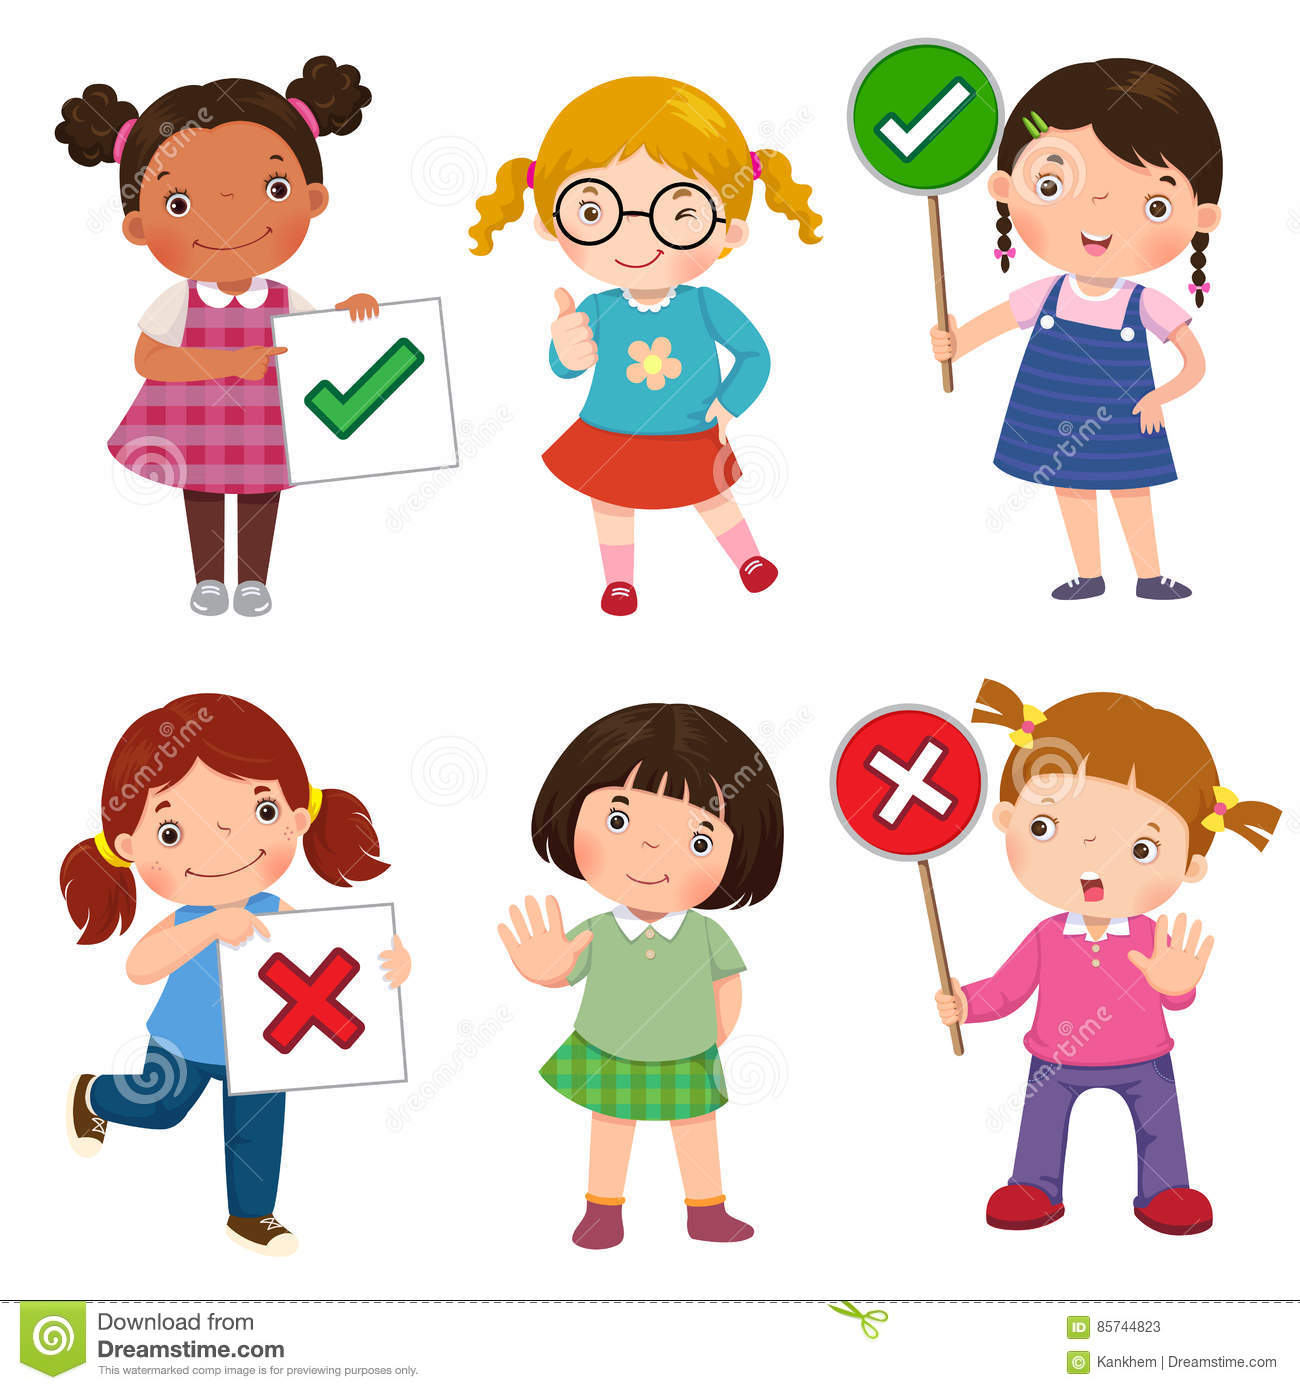 Girls Cartoons Illustrations Amp Vector Stock Images